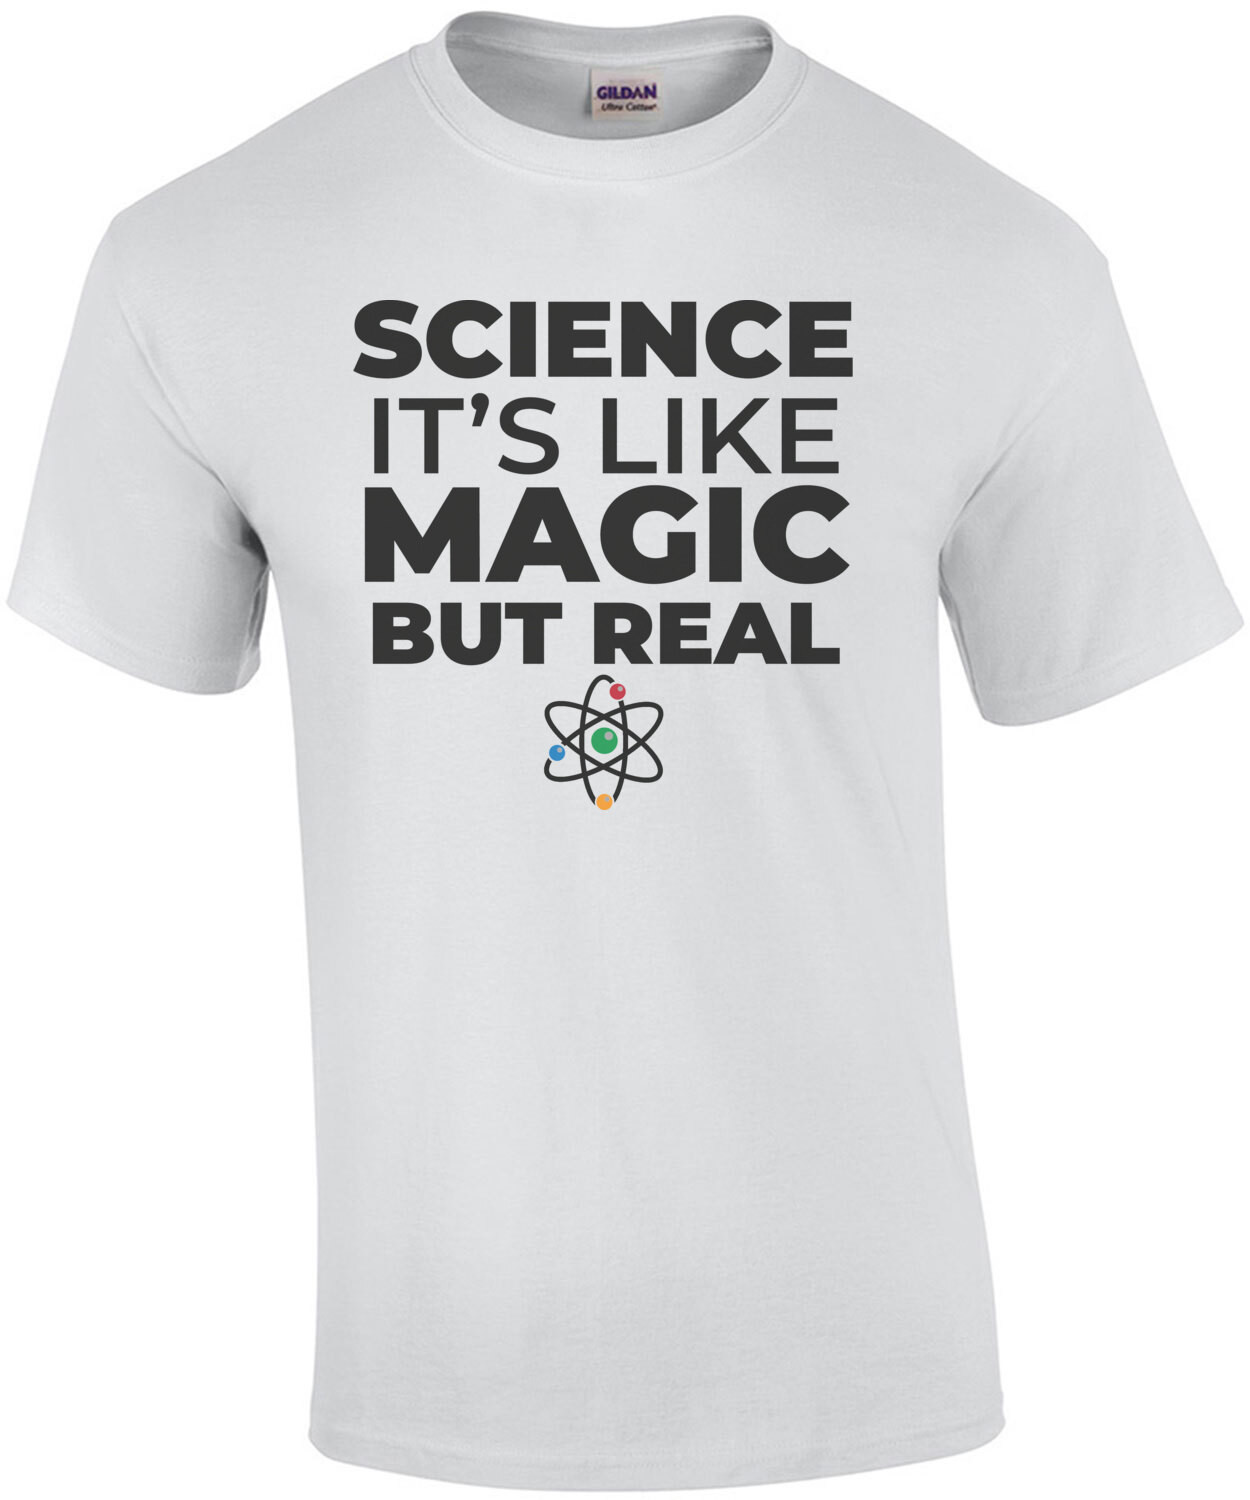 Science - It's like magic but real - funny science t-shirt